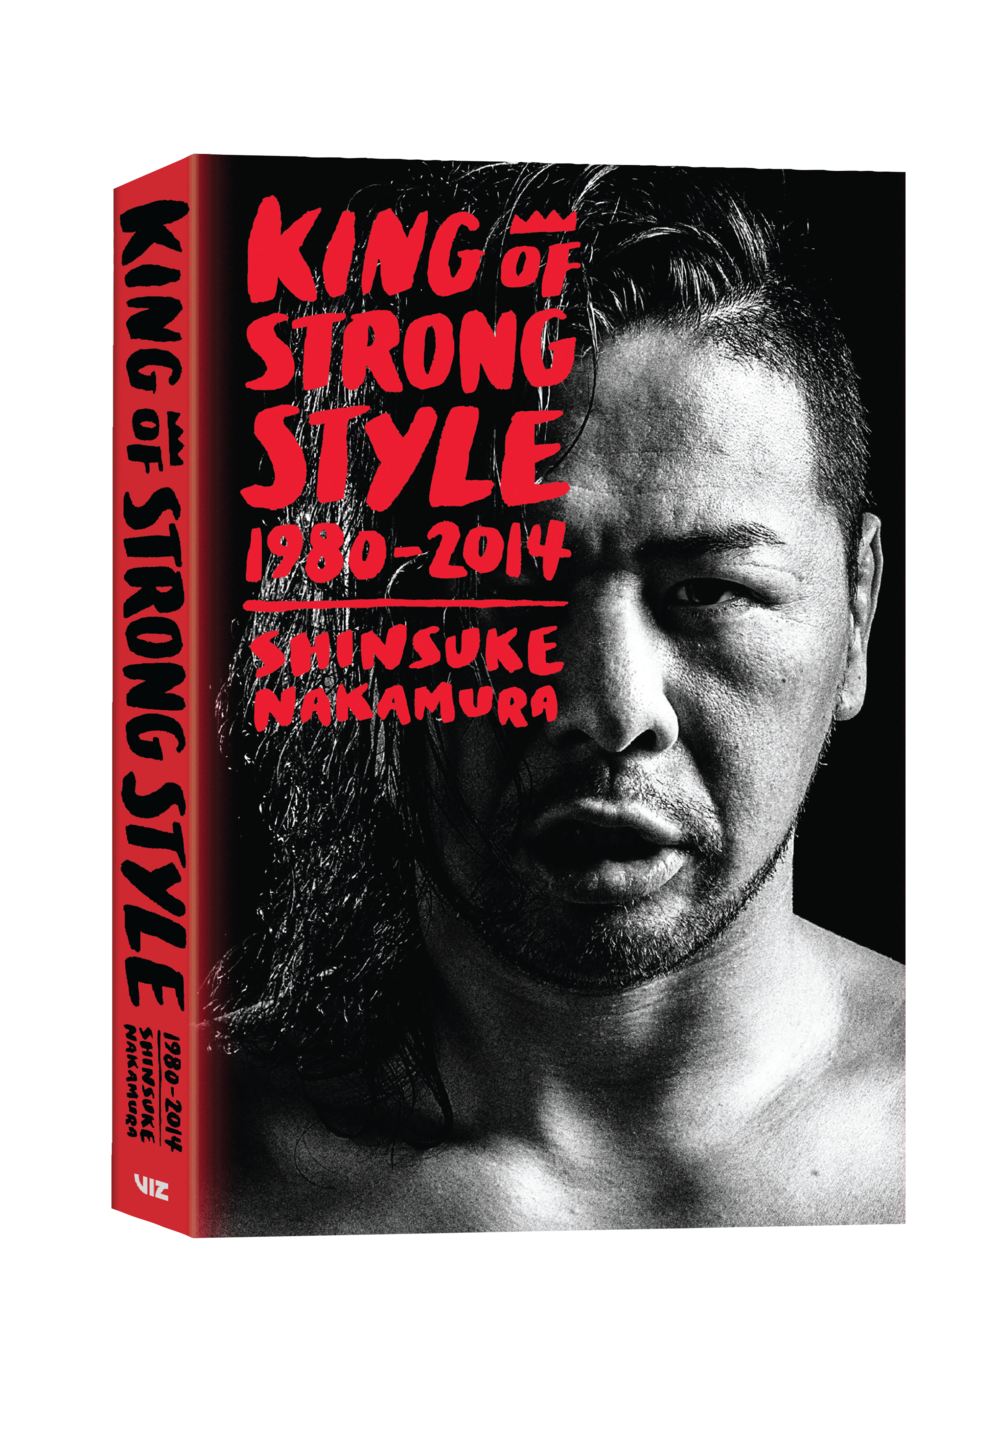 "- Limited-Time Offer: Signed copies available exclusively at Barnes & Noble starting Black Friday 11/23/18! Find a store near you.Before he became a star of American professional wrestling, Shinsuke Nakamura was Japan's ""King of Strong Style."" Follow his life and career from the amateur grappling ranks to the Nippon Budokon, thrill to his matches against such legends as Kurt Angle and Brock Lesnar, his reign as the youngest New Japan Pro-Wrestling Heavyweight Champion, and his success as a mixed martial artist.This entertaining sports biography includes photos from the life and career of Shinsuke Nakamura, from baby pictures to fashion shoots, from the amateur mat to the pro wrestling and MMA ring!Hardcover: $26.99 (Prices may vary by retailer)eBook: $13.99Release Date: August 7, 2018344 pages (including 48 pages of full-color photos)"